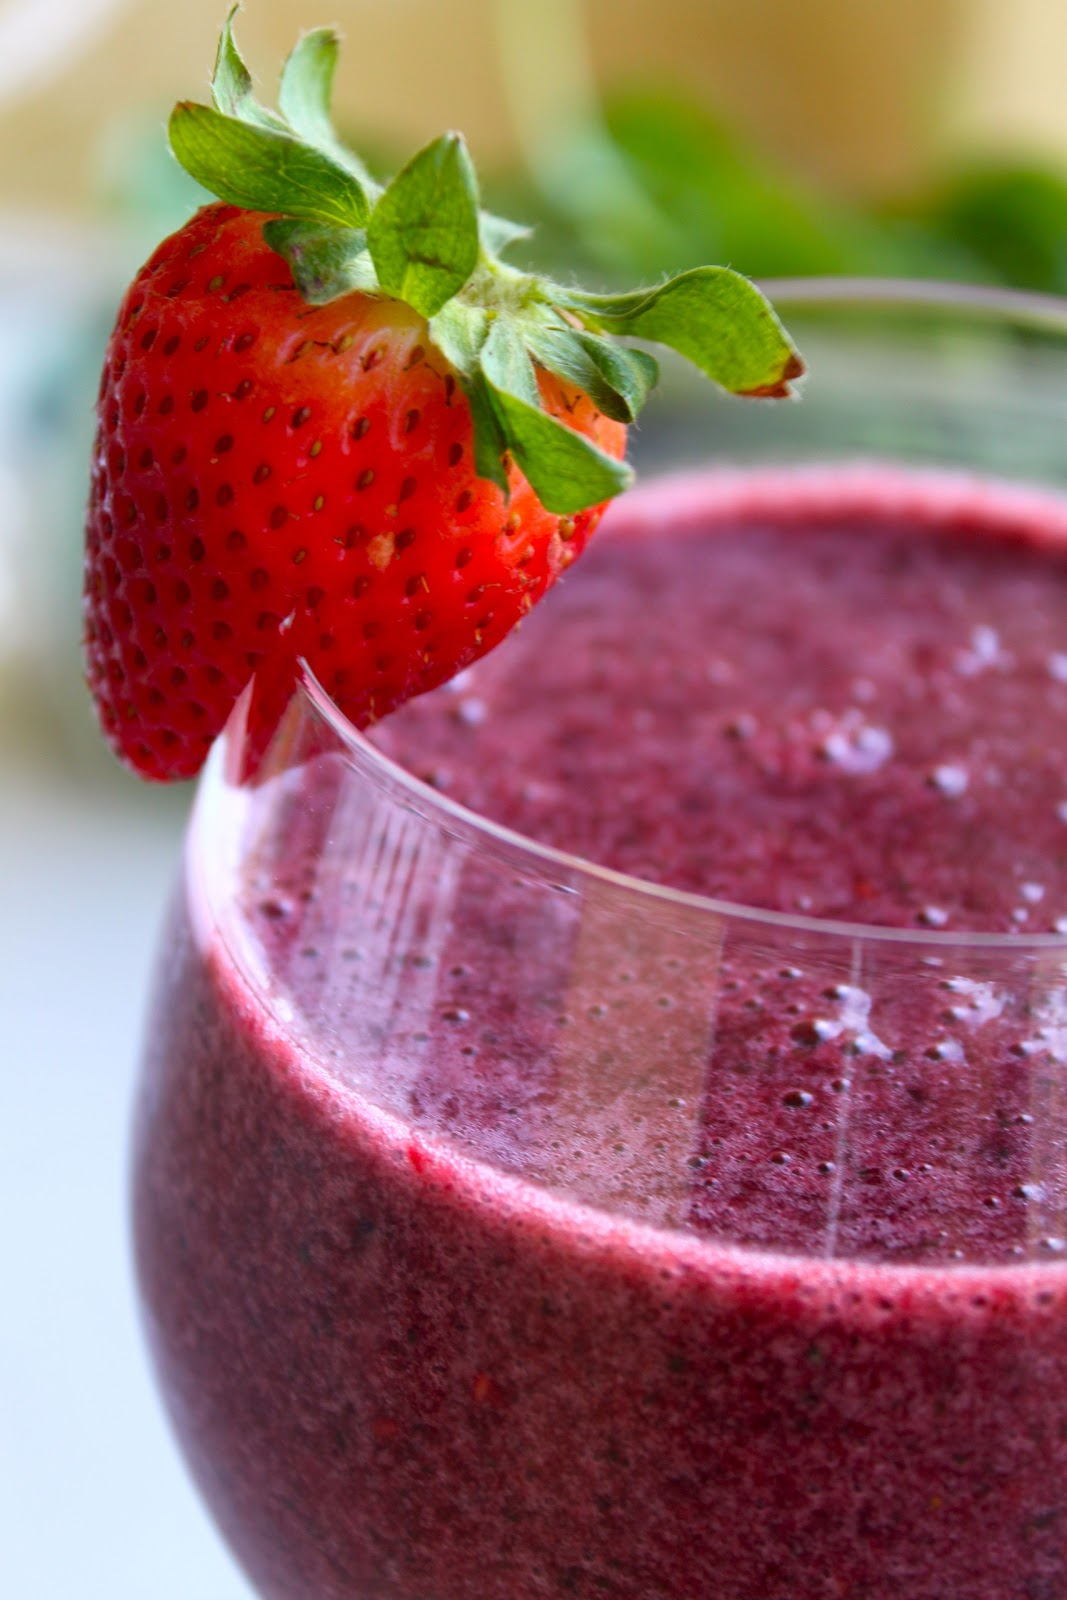 Mixed Berry Smoothie | That Organic Girl